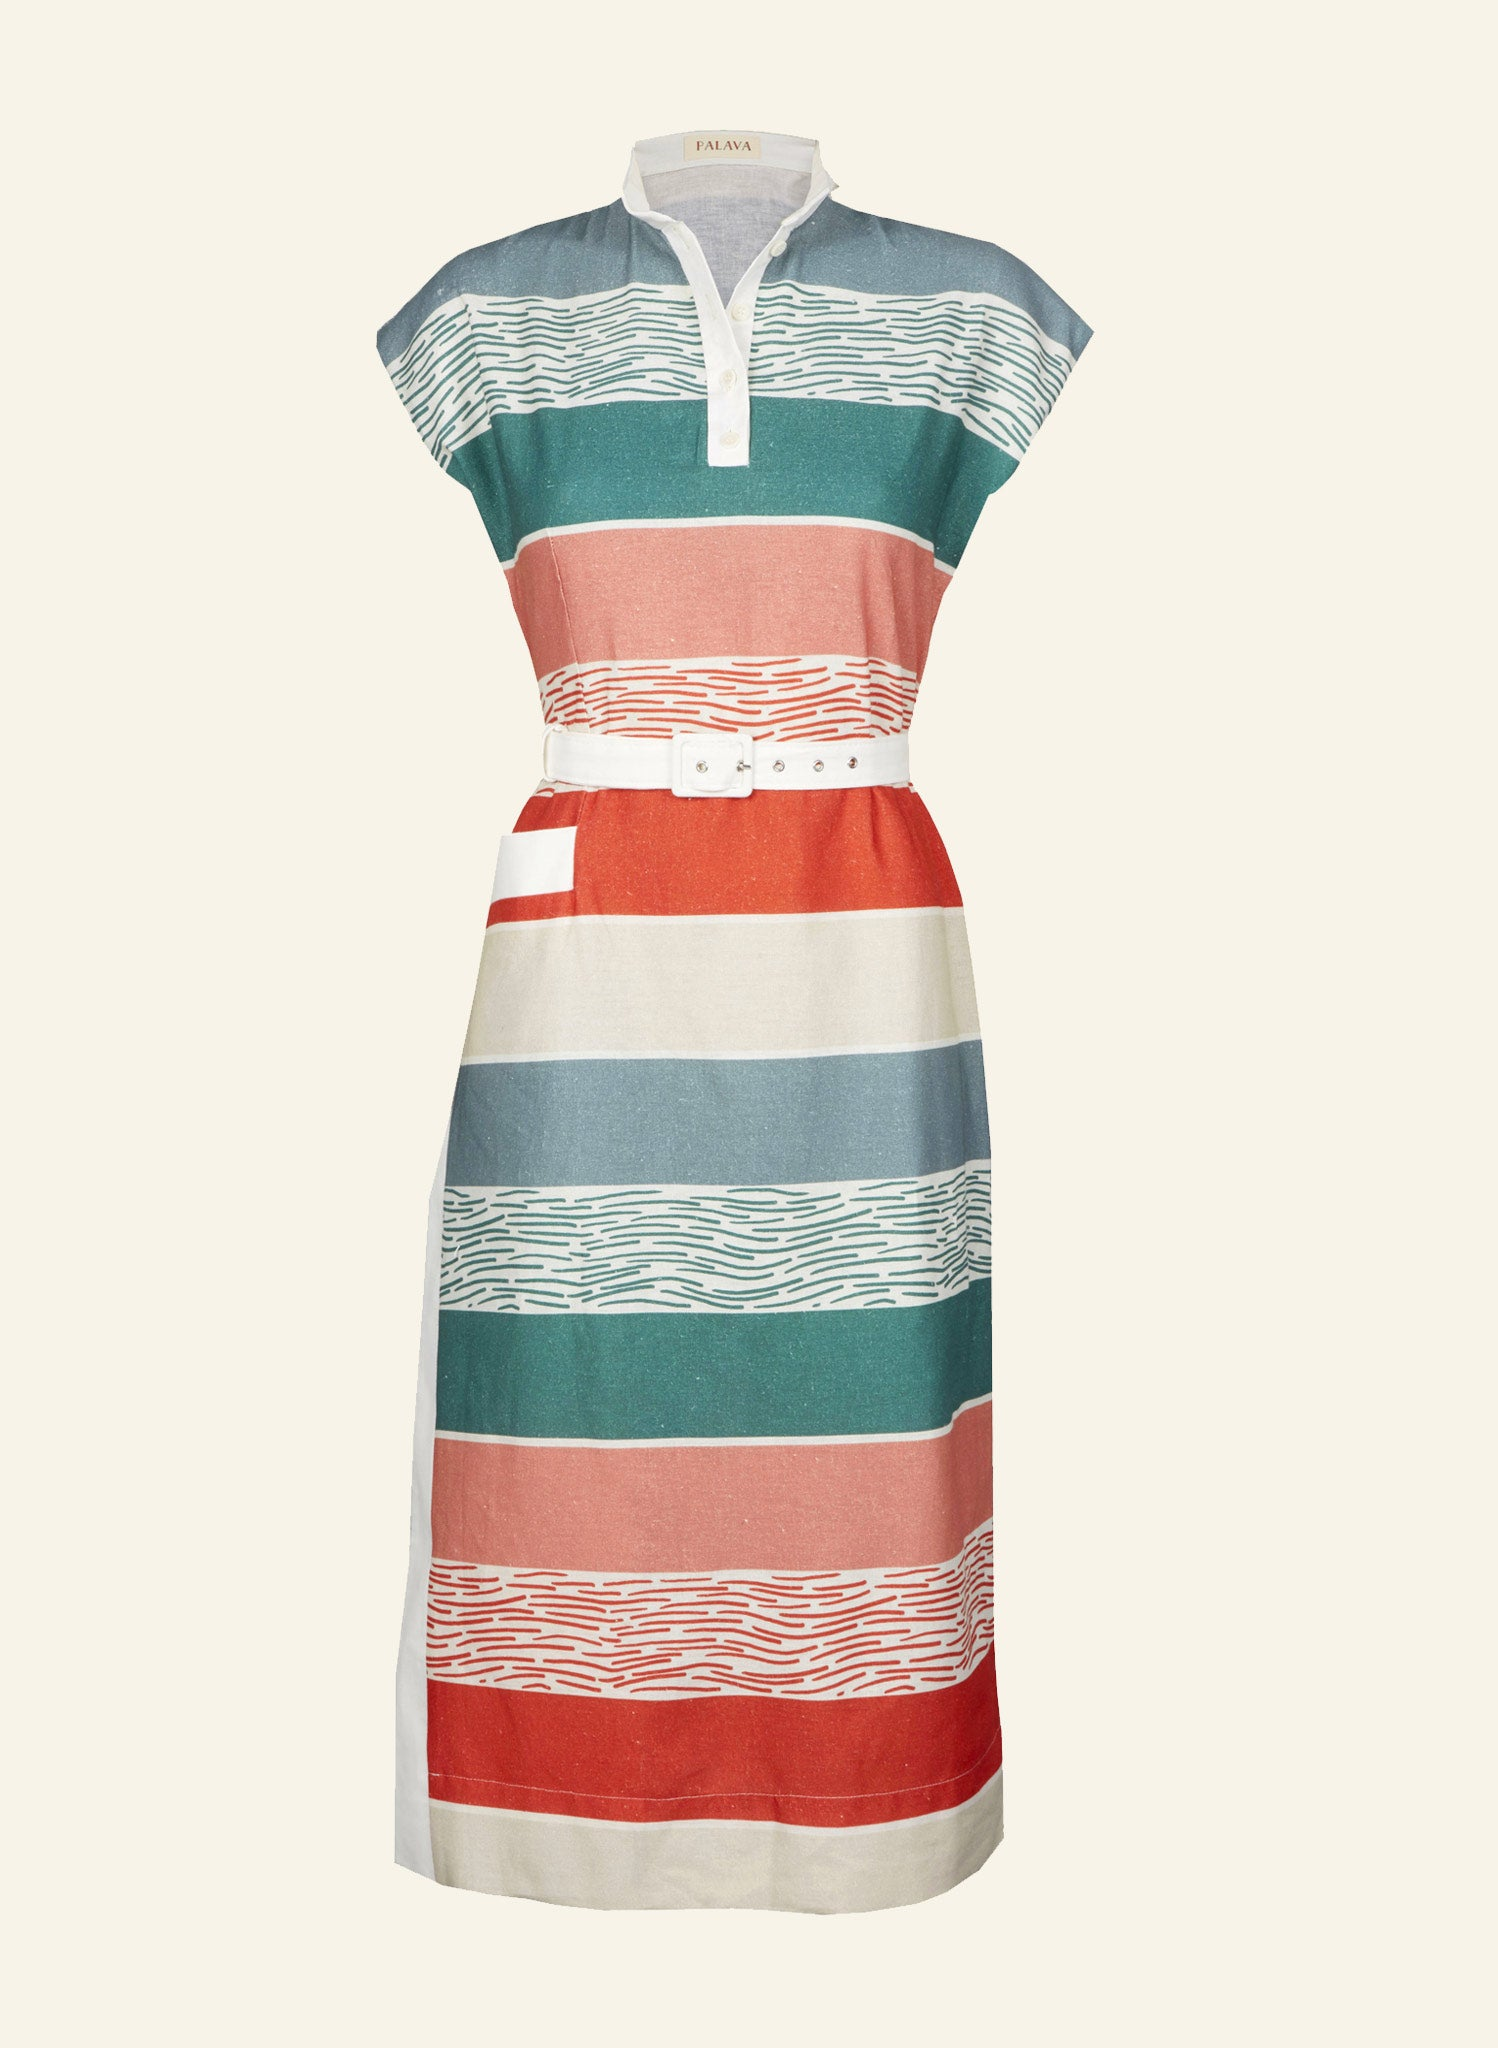 Palava Womens Cyd Dress in Summer Beach Stripe Cotton Linen Fabric